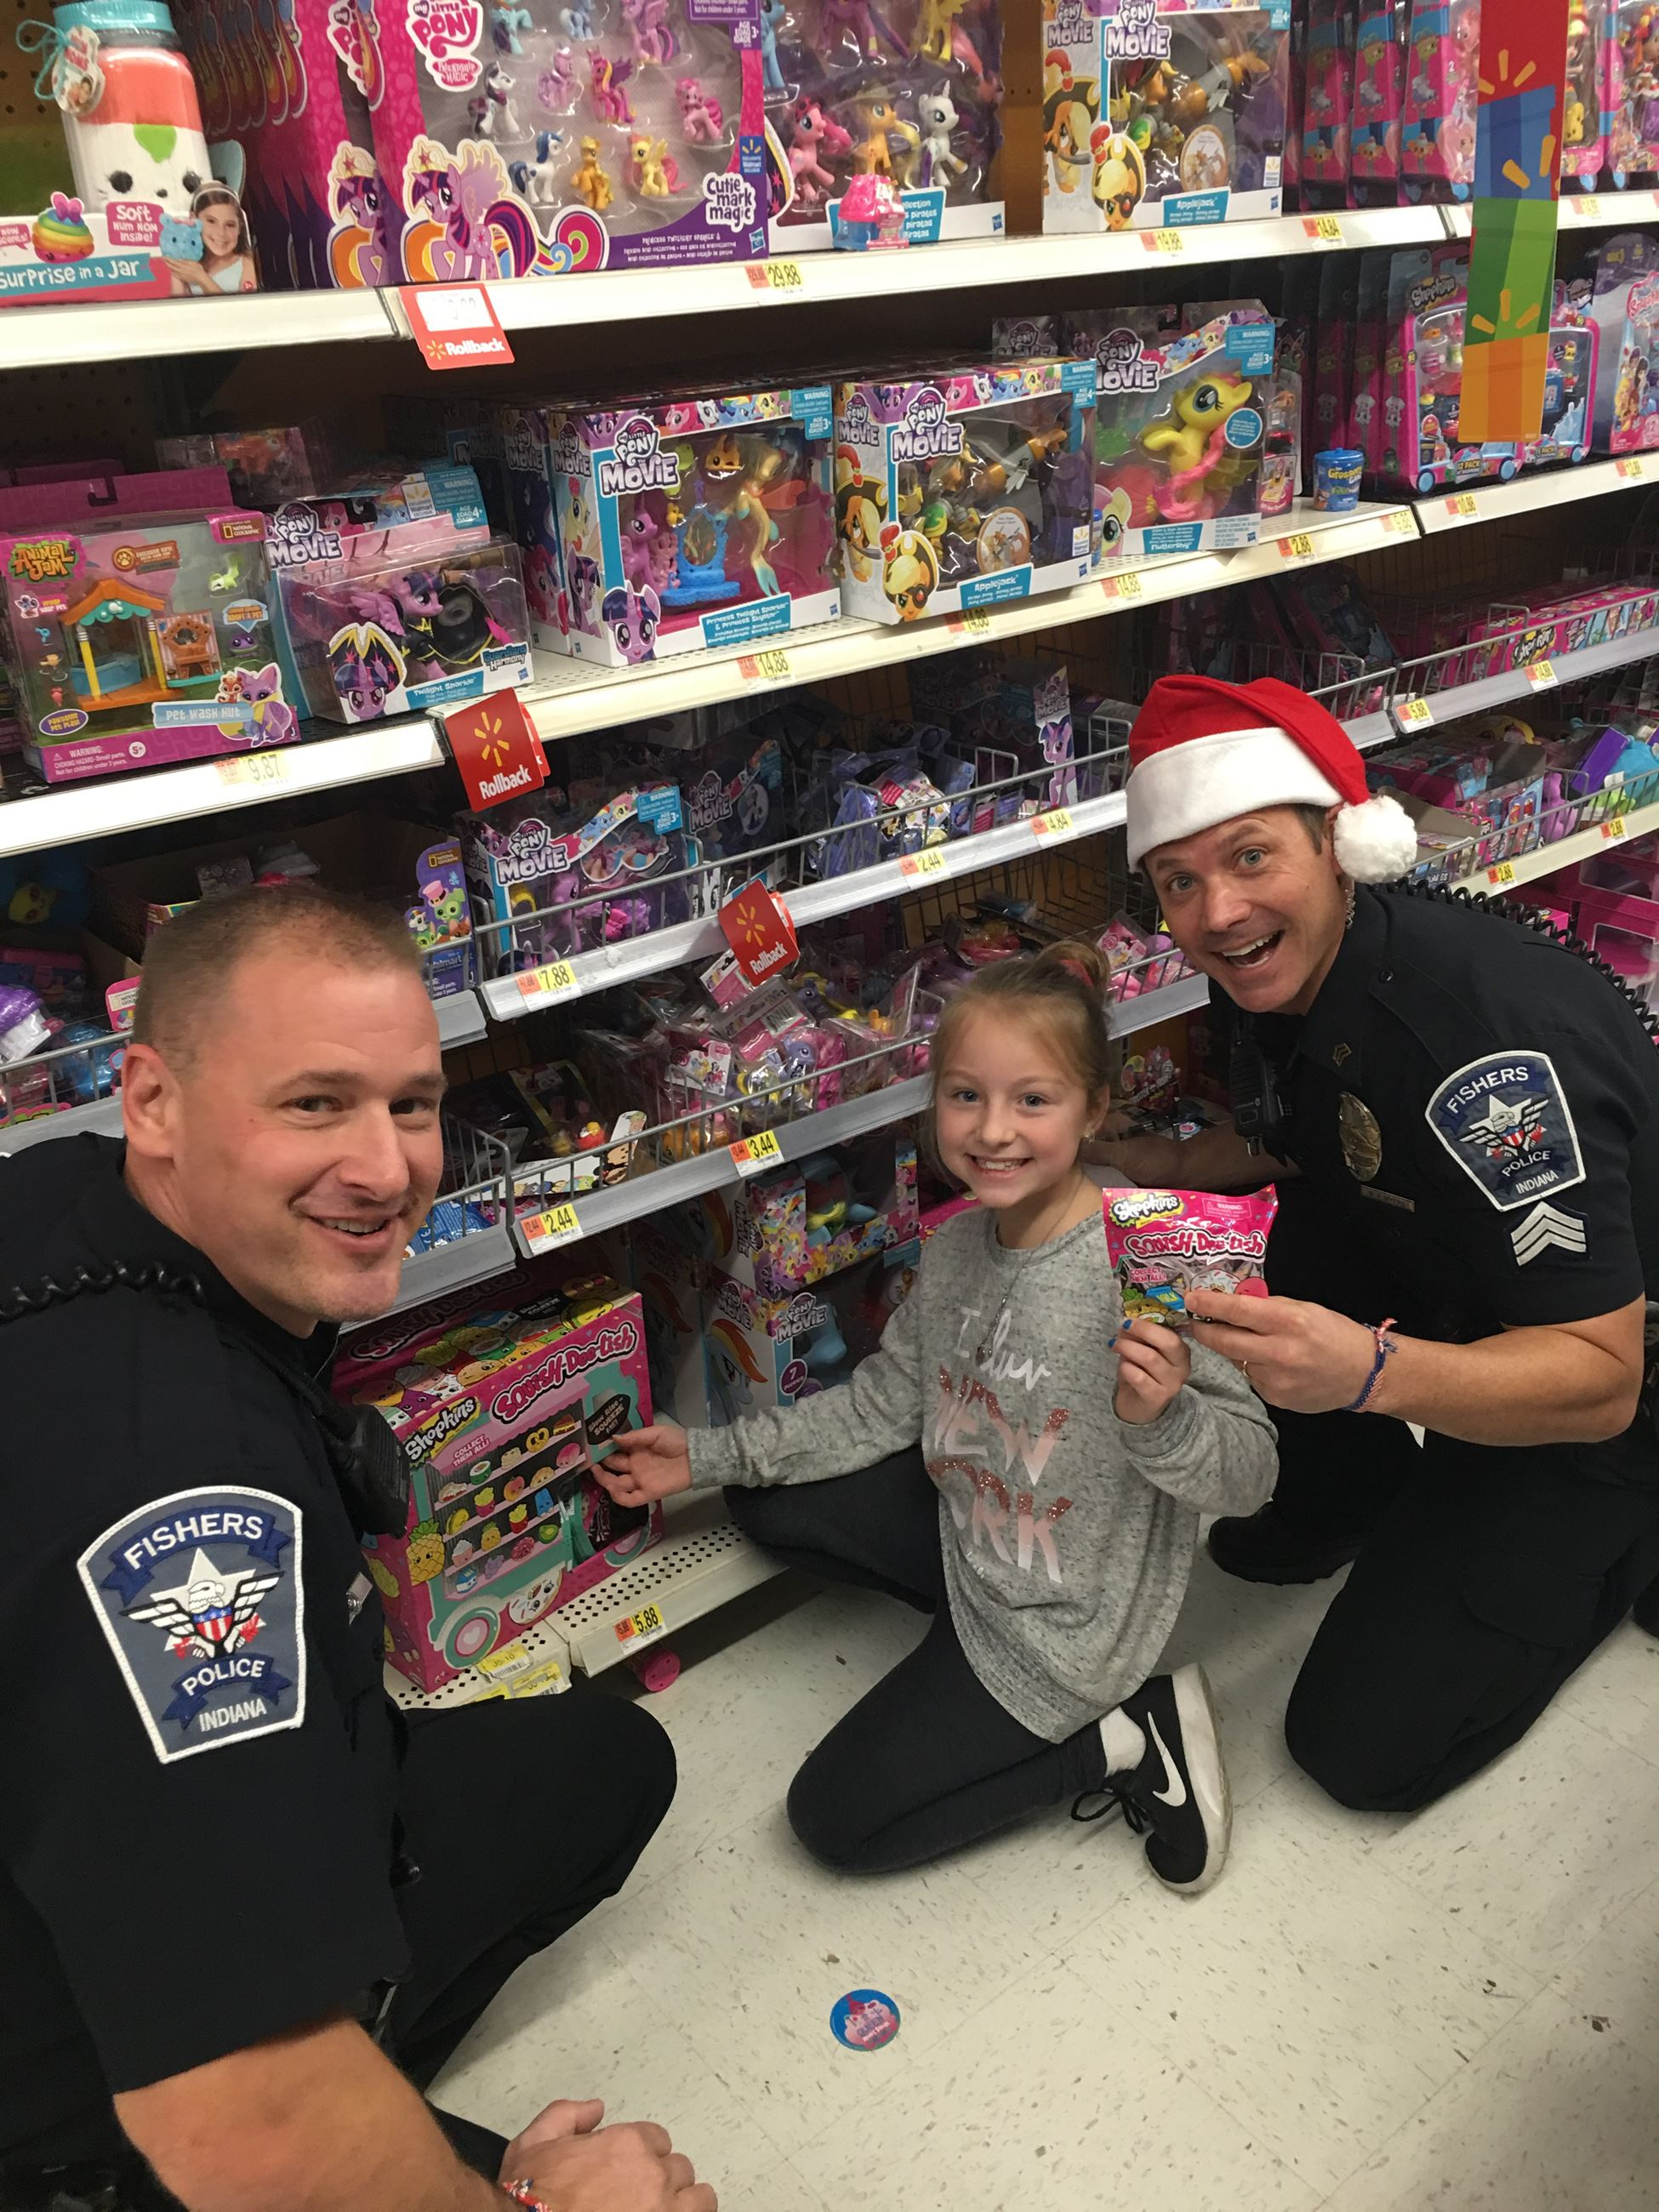 police officer shopping with children